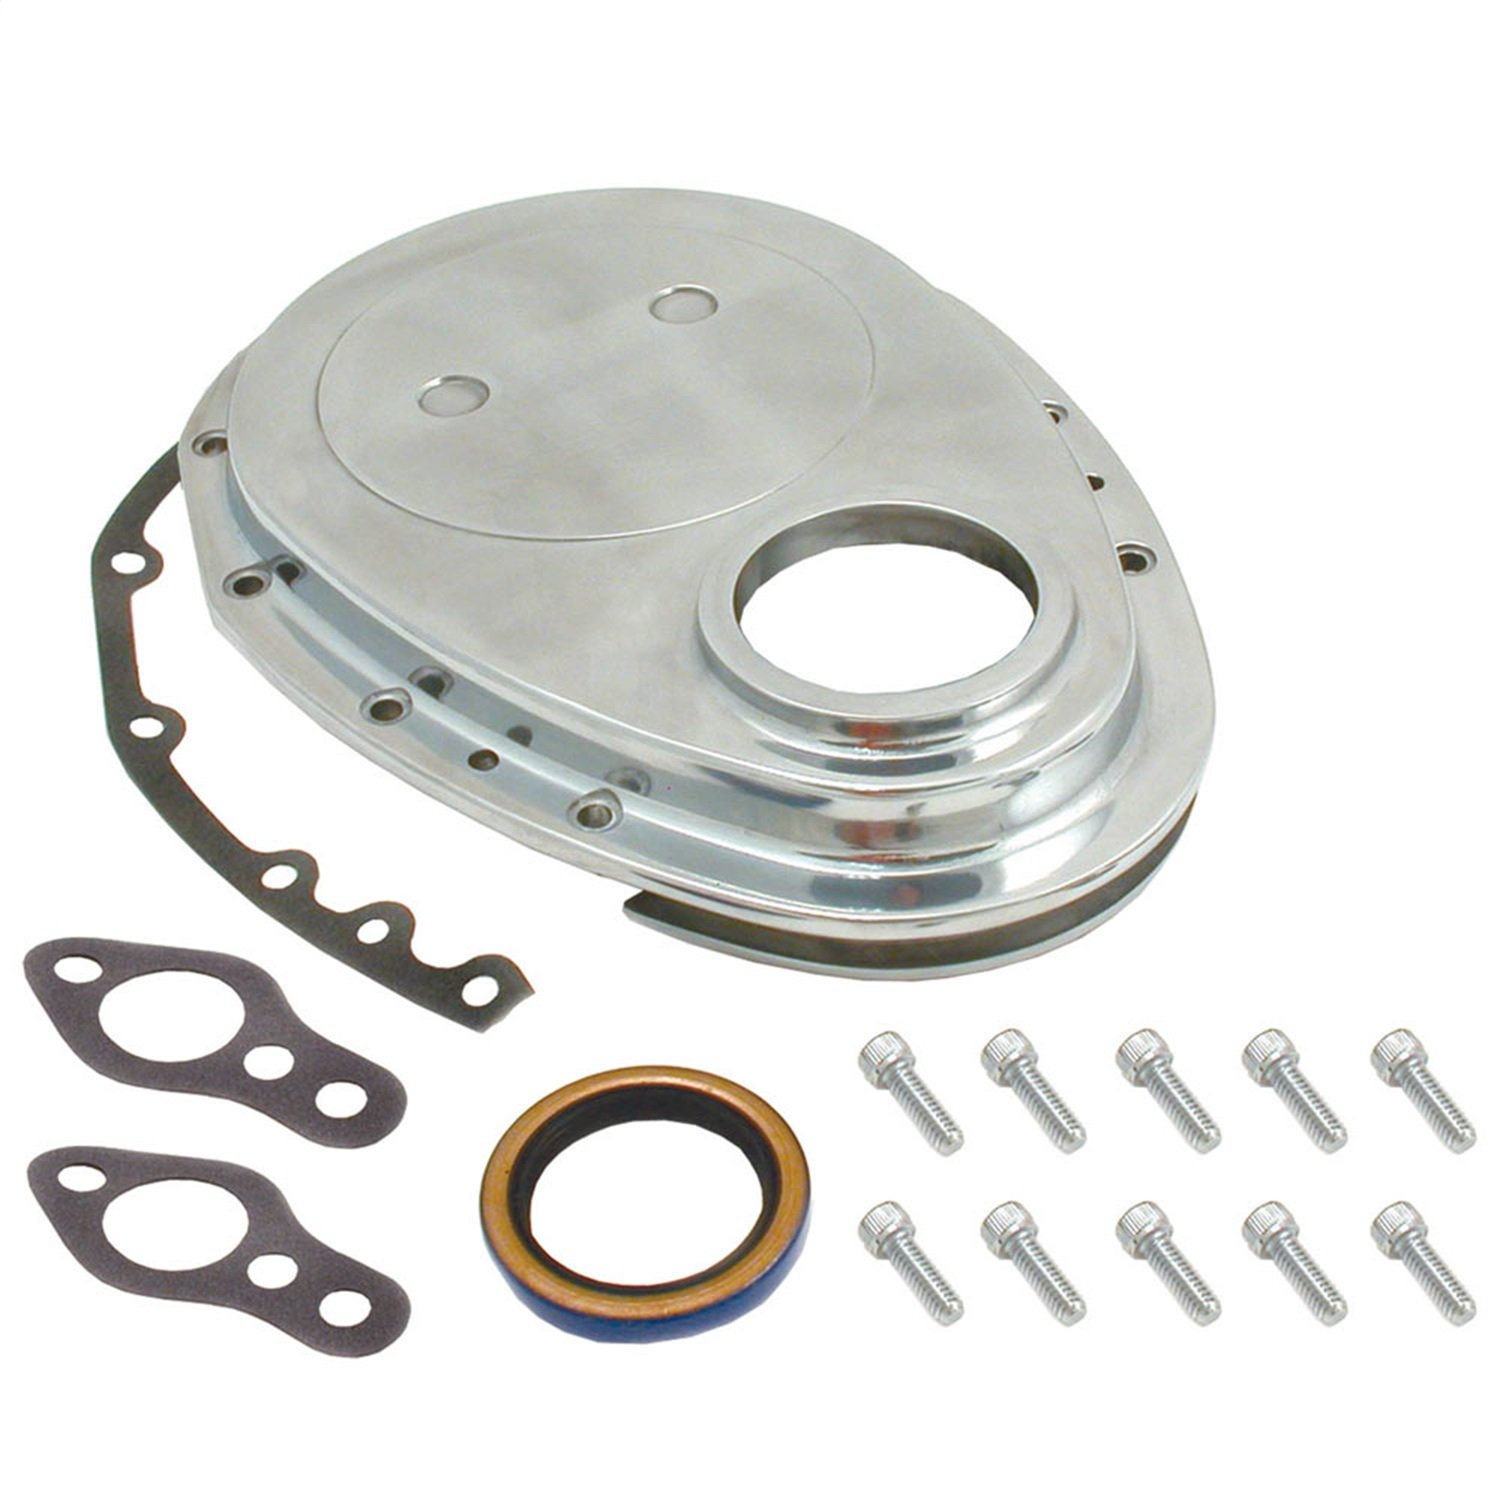 Spectre Performance 4935 Aluminum Timing Cover Kit for Small Block Chevy by Spectre Performance